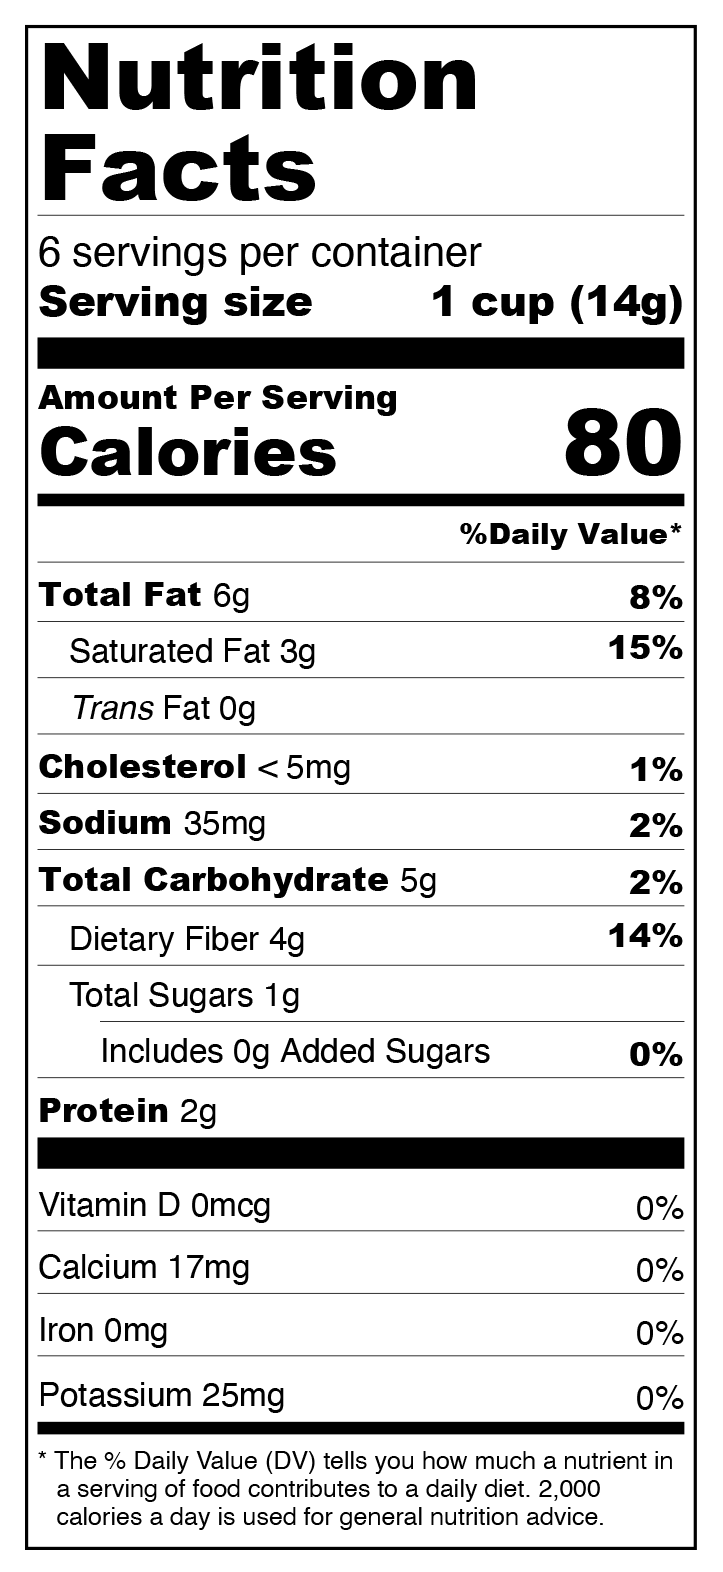 White Chocolate Peanut Butter Cups - No Added Sugar, Keto Friendly Nutrition Facts